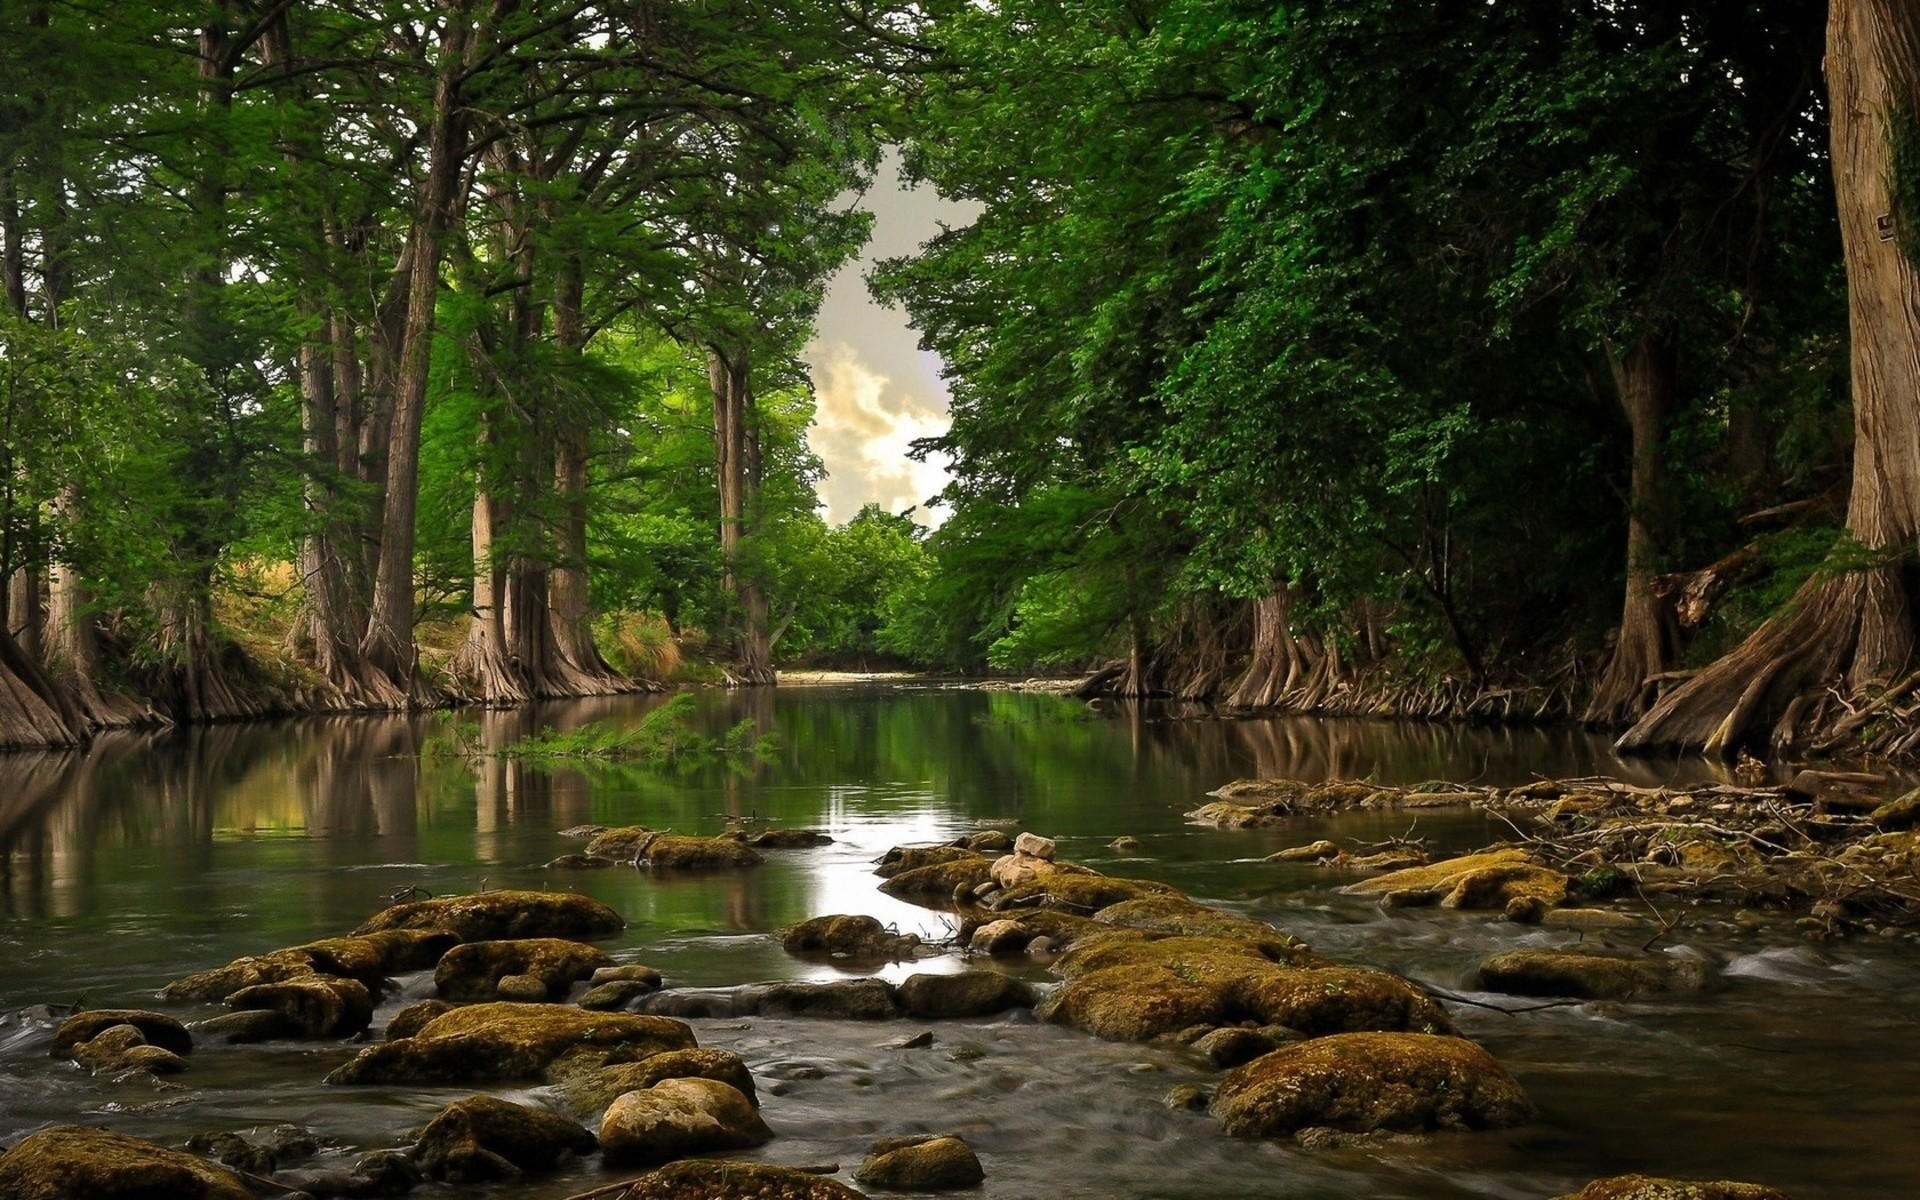 1920x1200 HD Landscape Wallpapers beautiful river in a forest River Nature Wallpapers  .